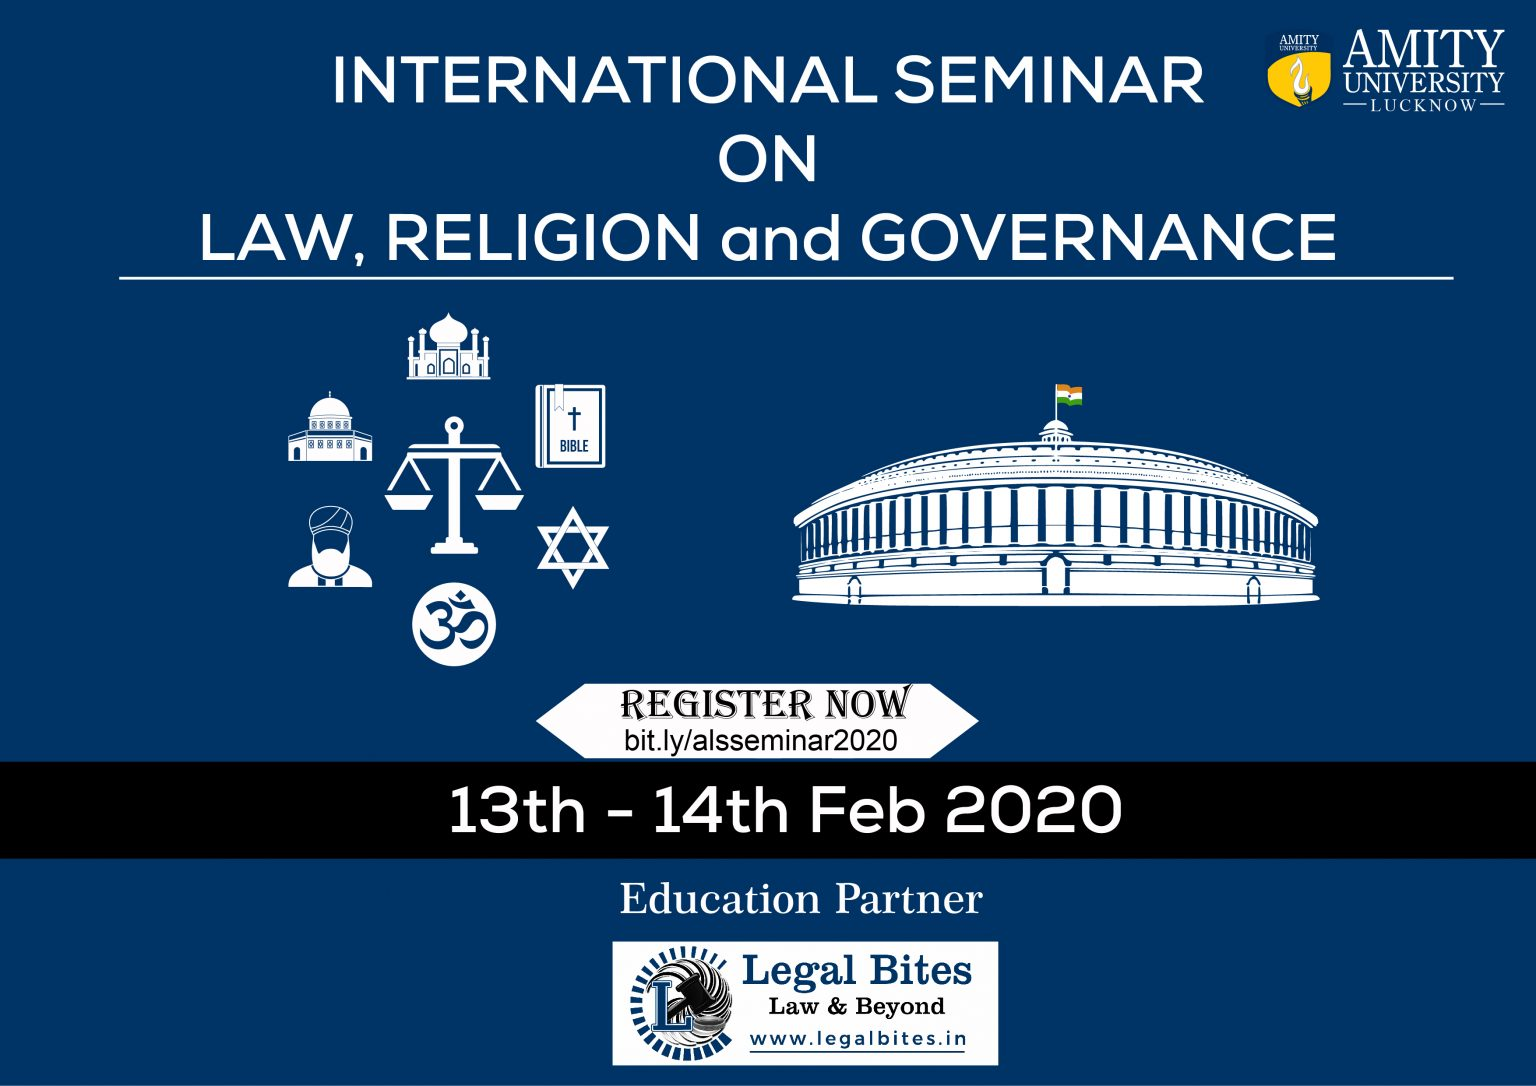 International Seminar on Law, Religion & Governance: Issues & Challenges 2020